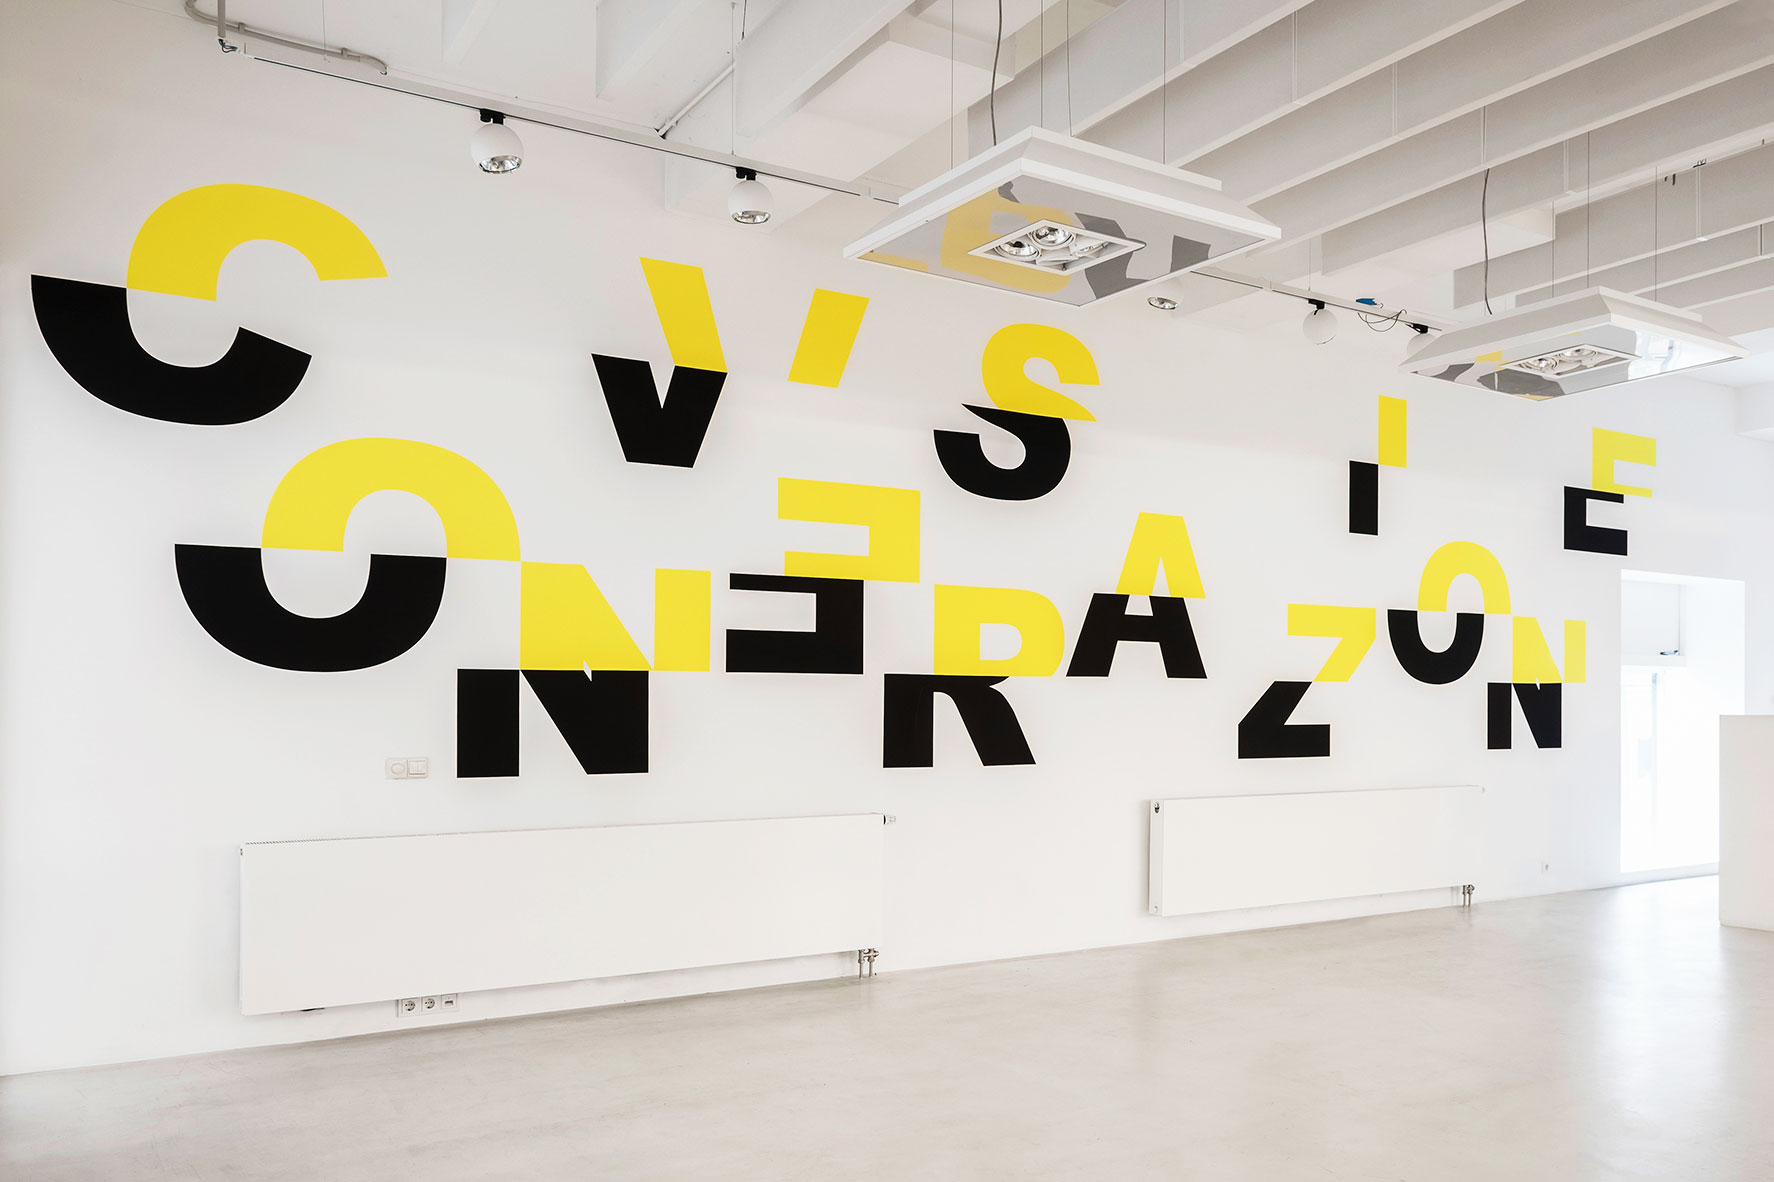 Conversation Piece, 4 x 11 m, wall paint, PHK18 / Convex Architects, part of the exhibition Contemporary Contemplations #4, 20 january - 29 march 2019, Rotterdam  Photo BEELD31